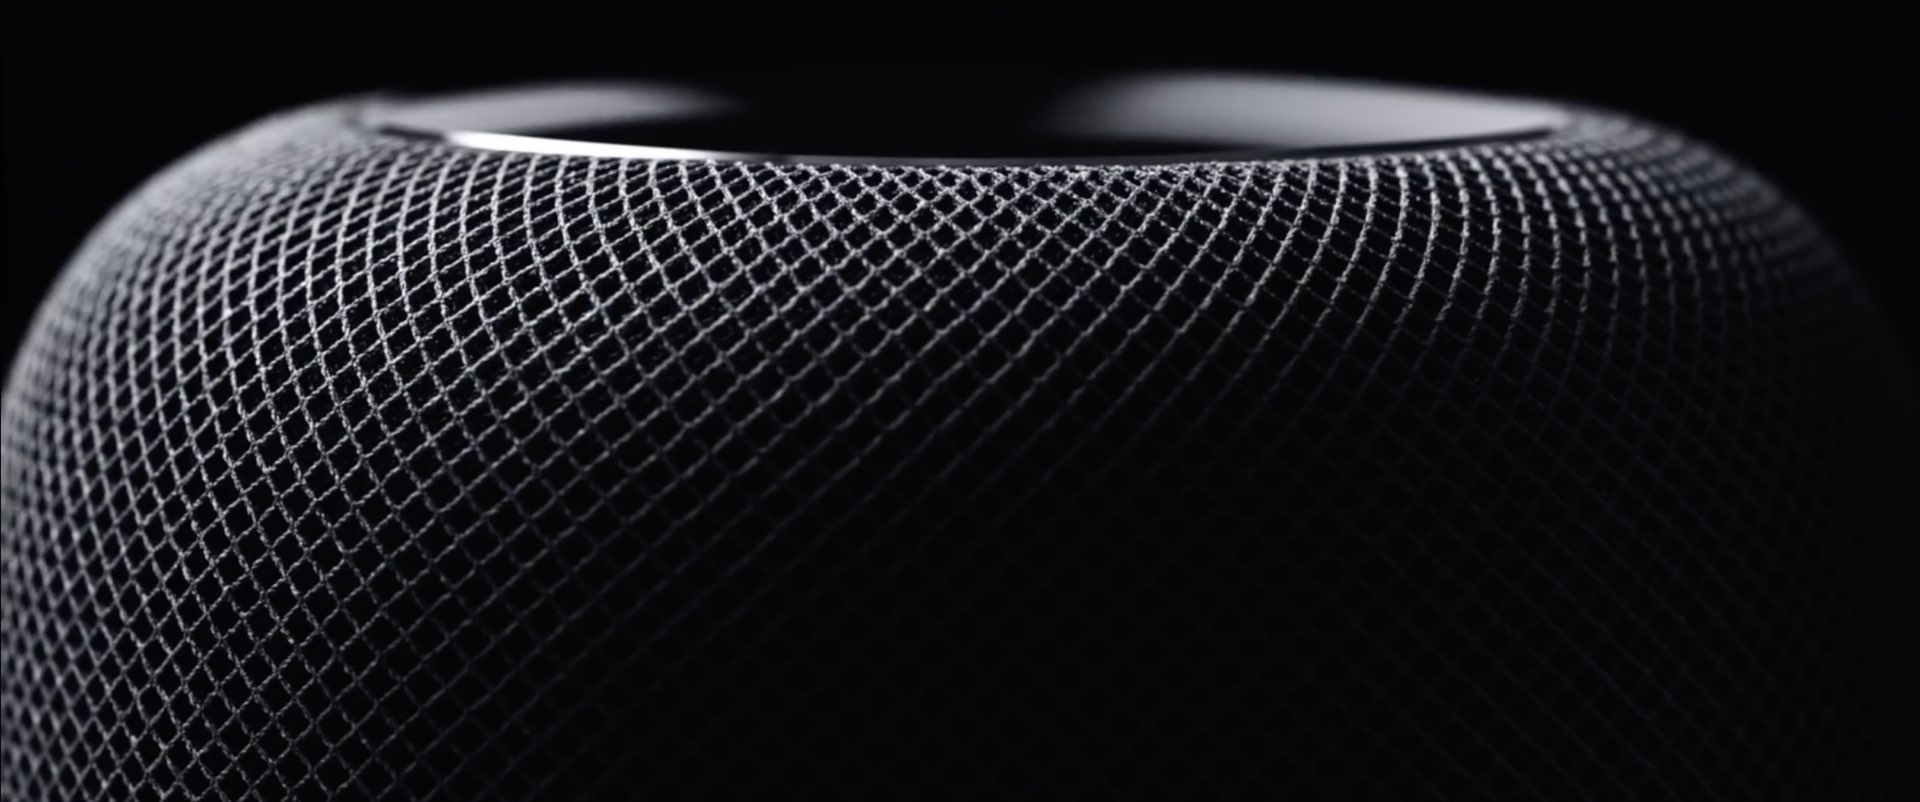 5_HomePod-black-top.jpg